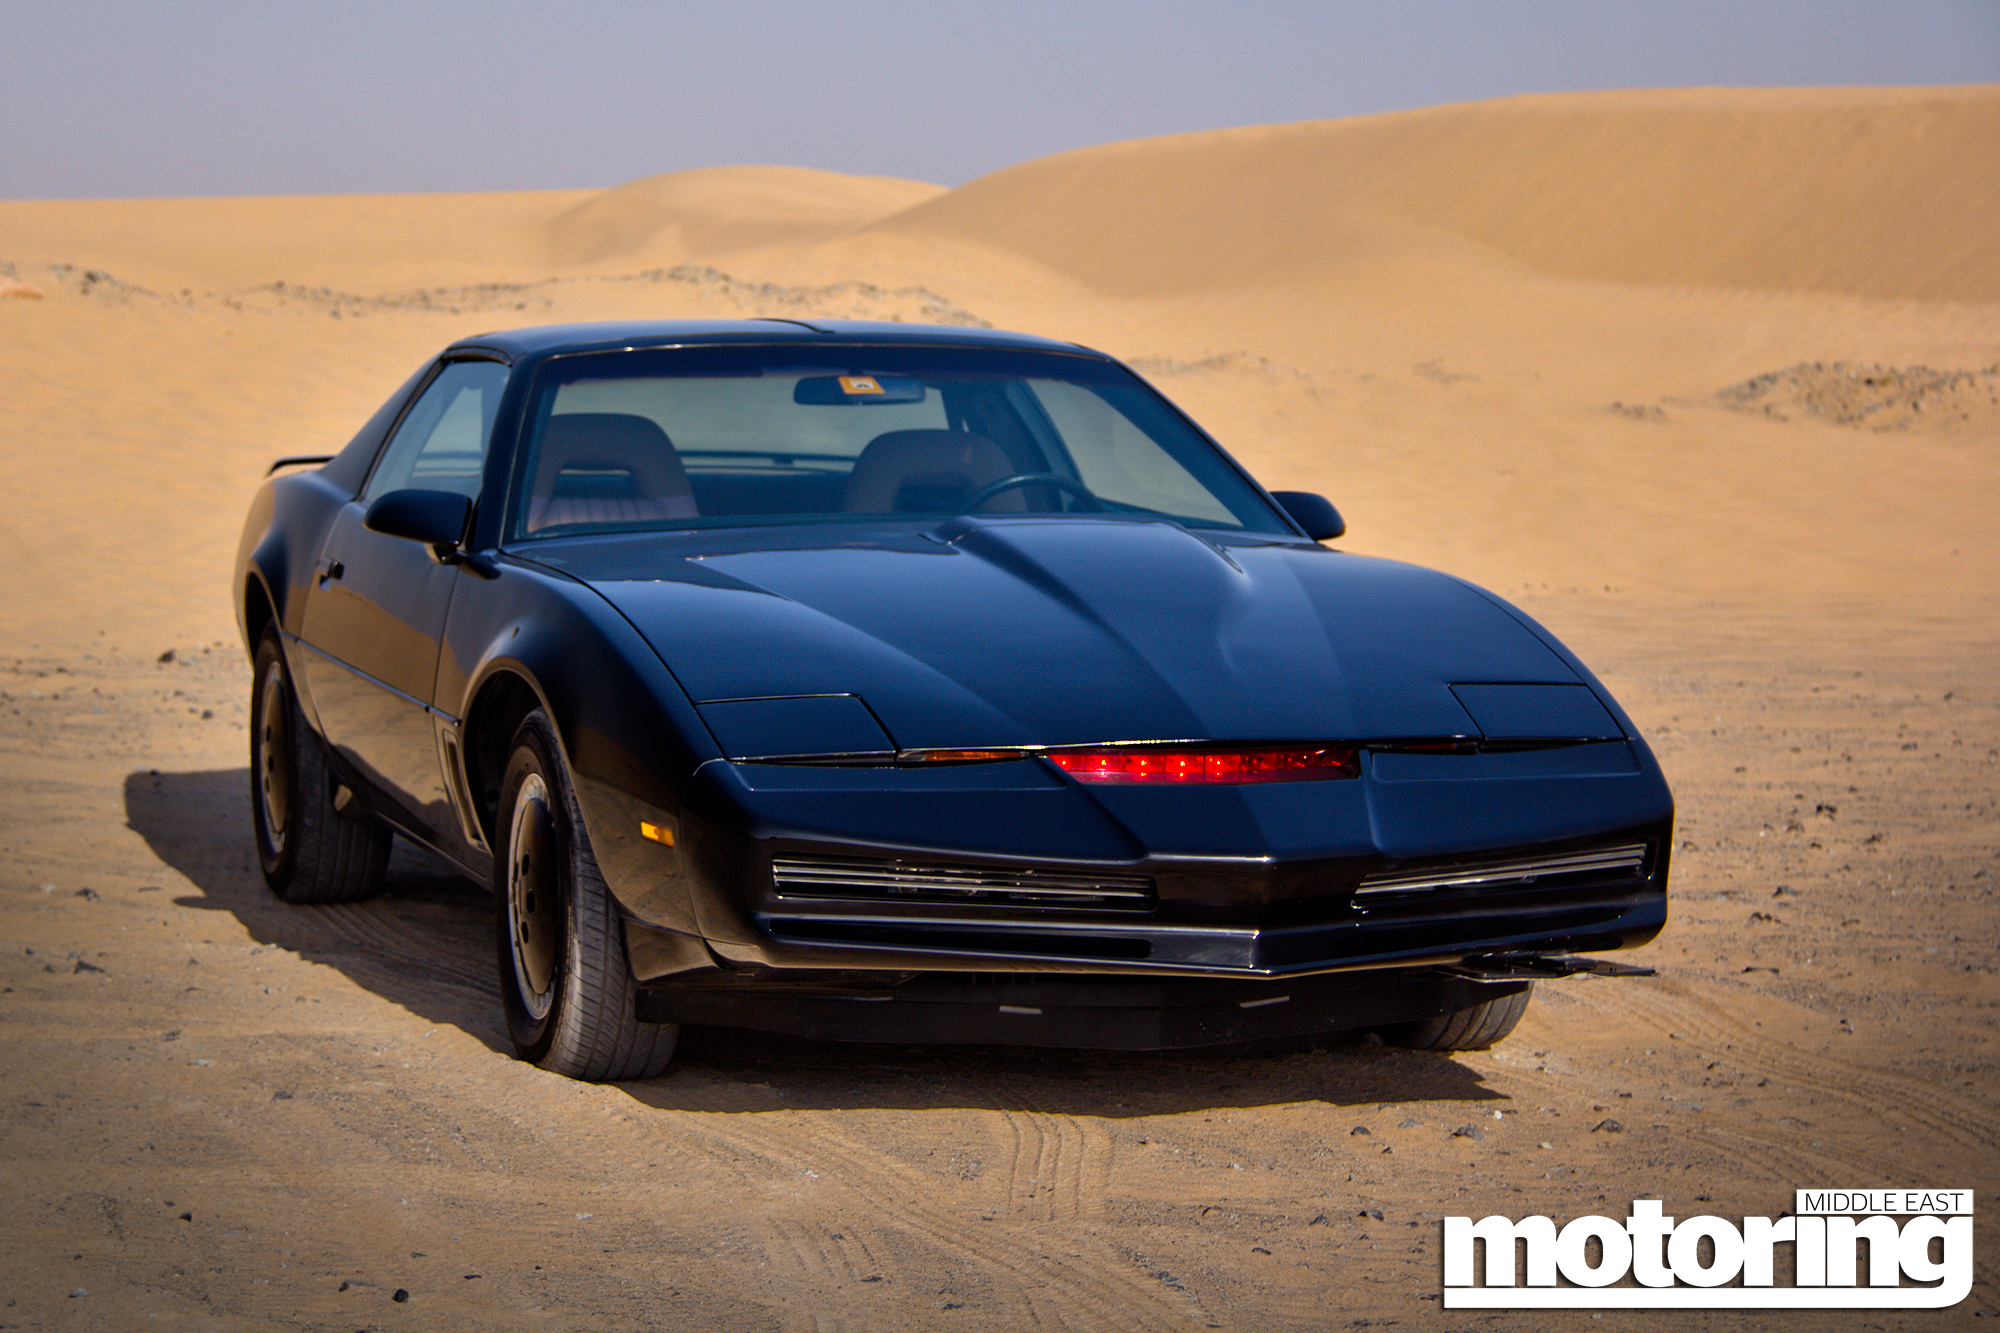 Kitt from knight rider and we drive itmotoring middle east car 5 responses to kitt thecheapjerseys Images